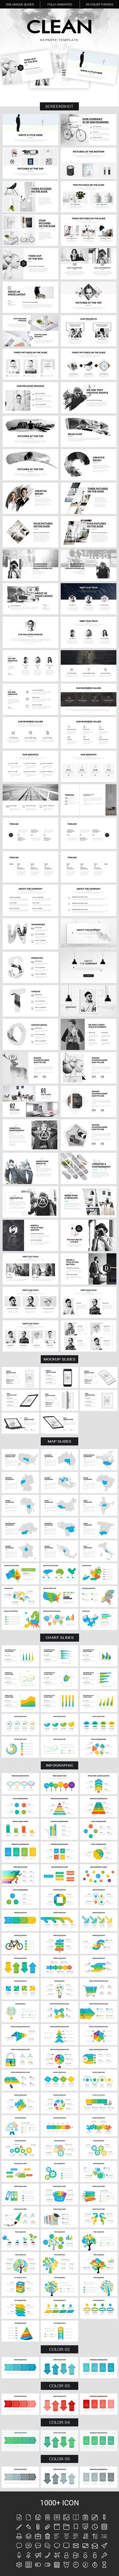 Clean Keynote Template  #ecommerce #enterprise #entrepreneur • Click here to download ! http://graphicriver.net/item/clean-keynote-template/15921009?s_rank=116&ref=pxcr                                                                                                                                                                                 More